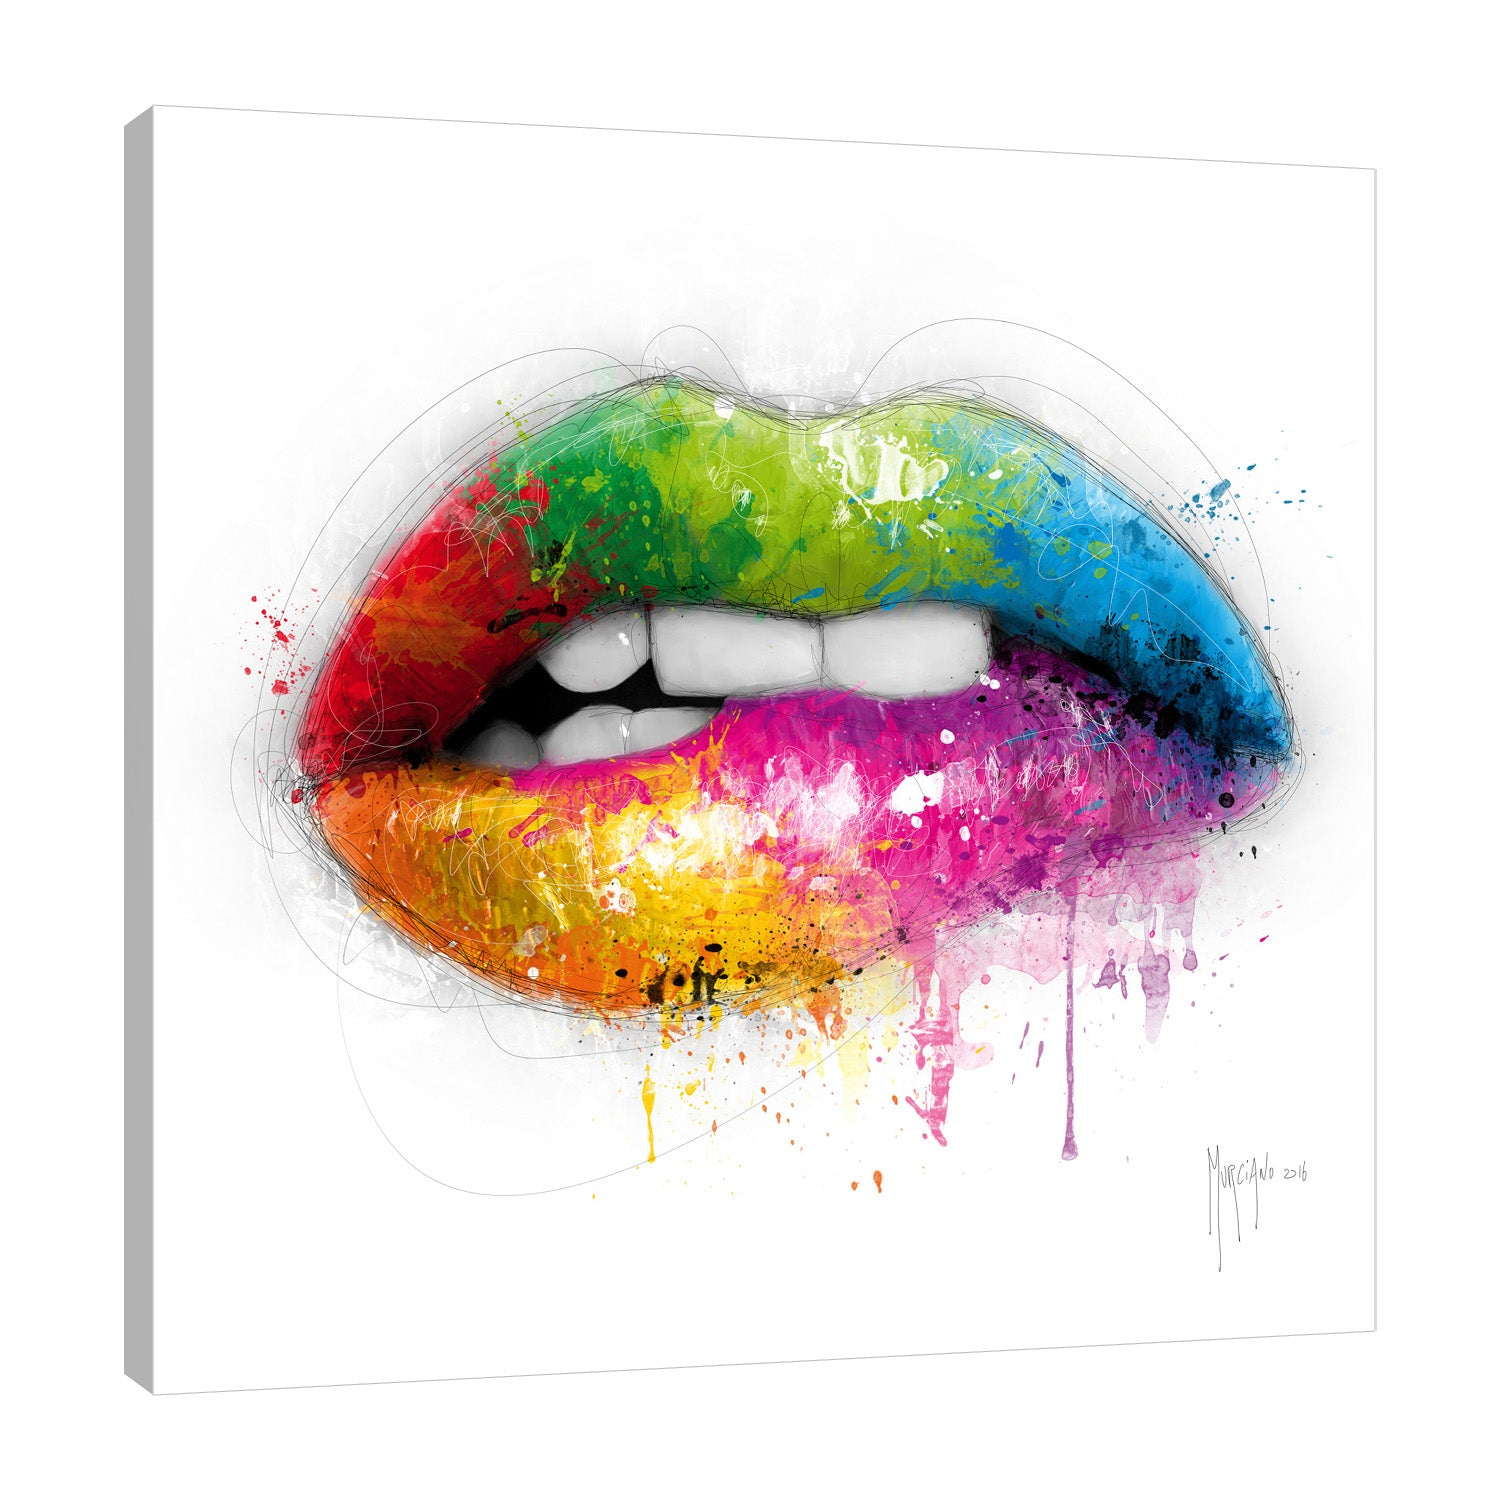 Patrice-Murciano,Modern & Contemporary,Fashion,lips,ombre,paint drips,splatters,Charcoal Gray,Red,White,Gray